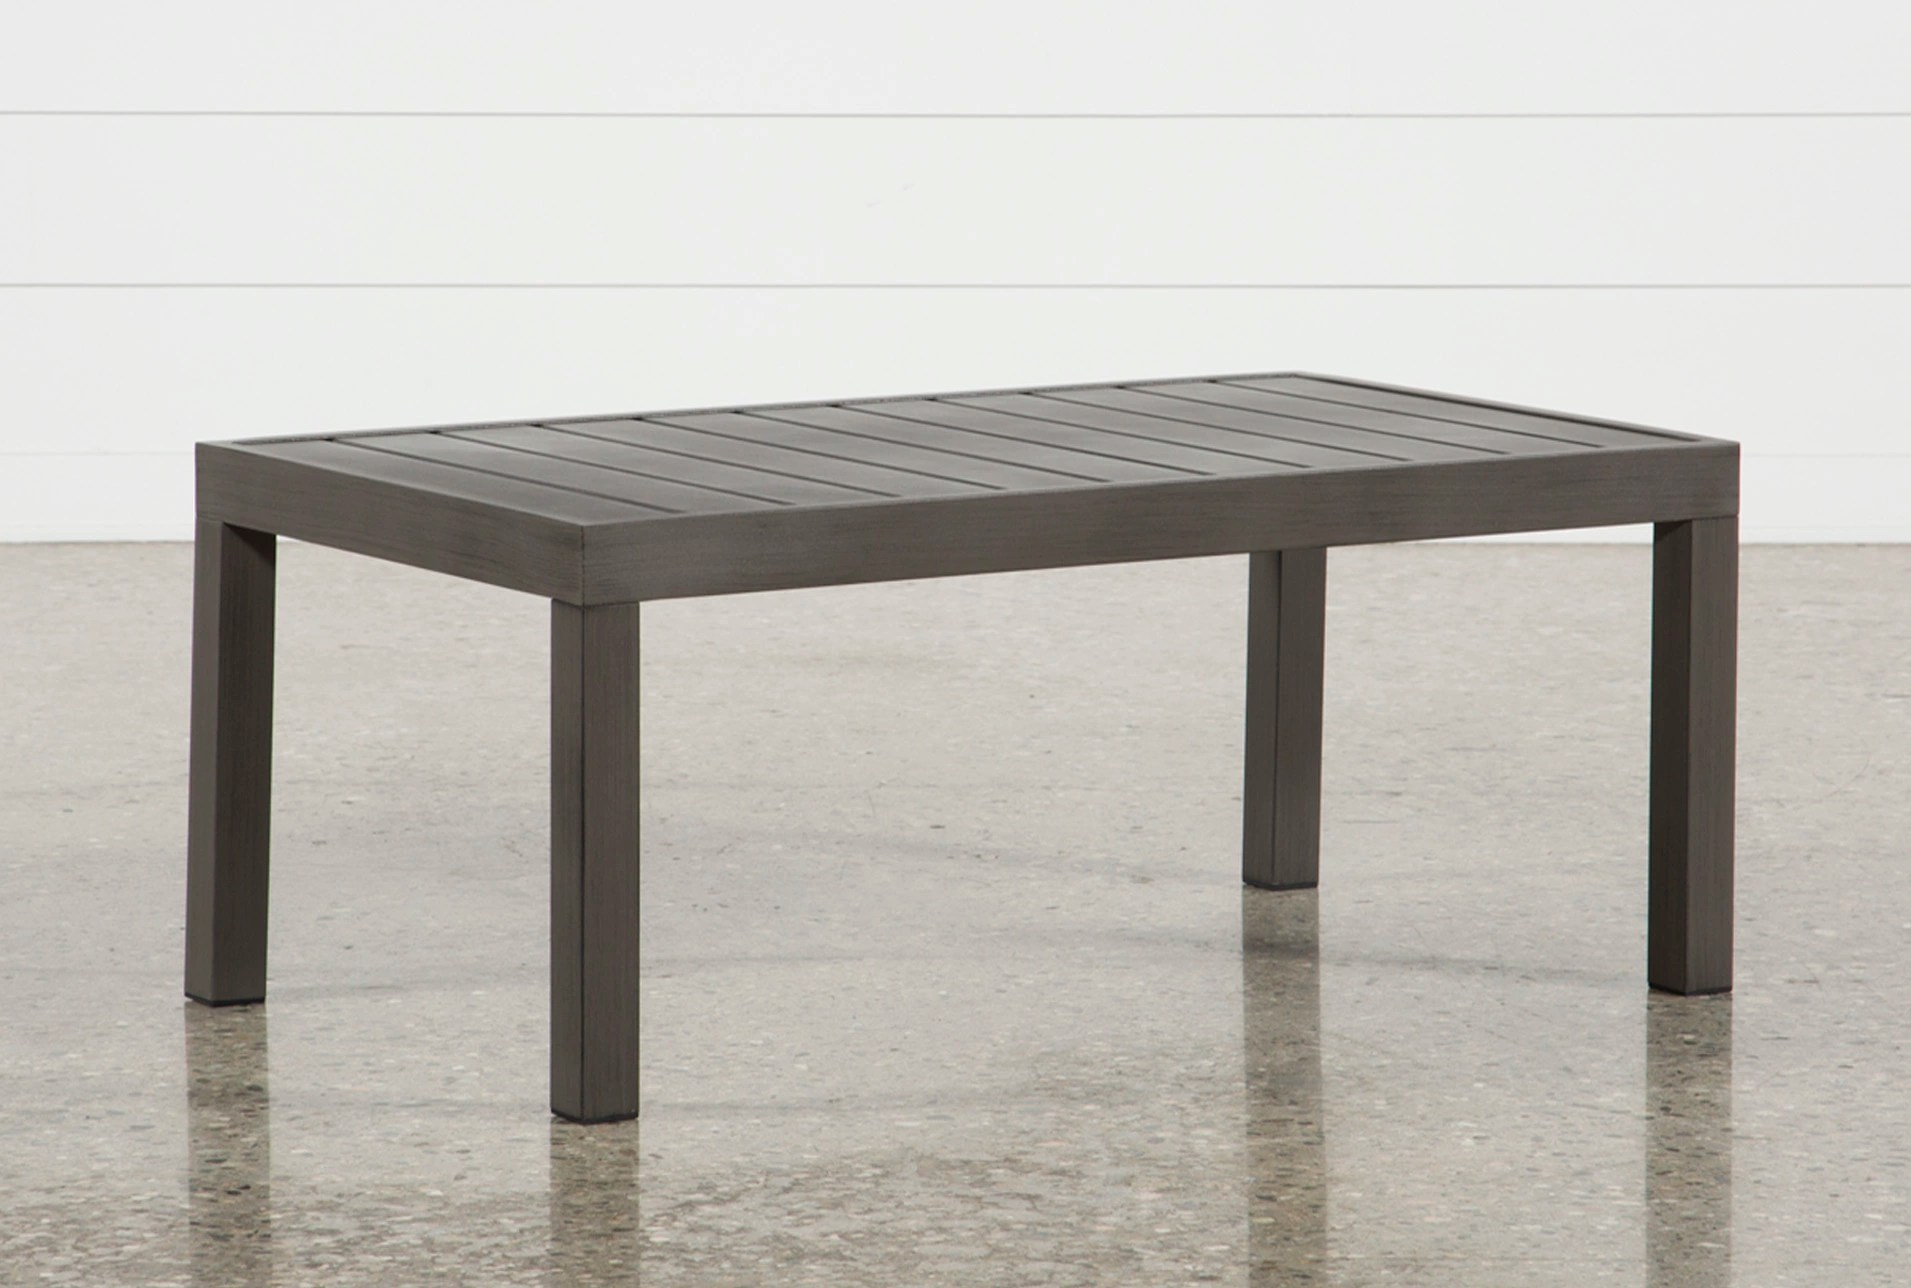 Shining Square Outdoor Dining Table - newlibrarygood.com